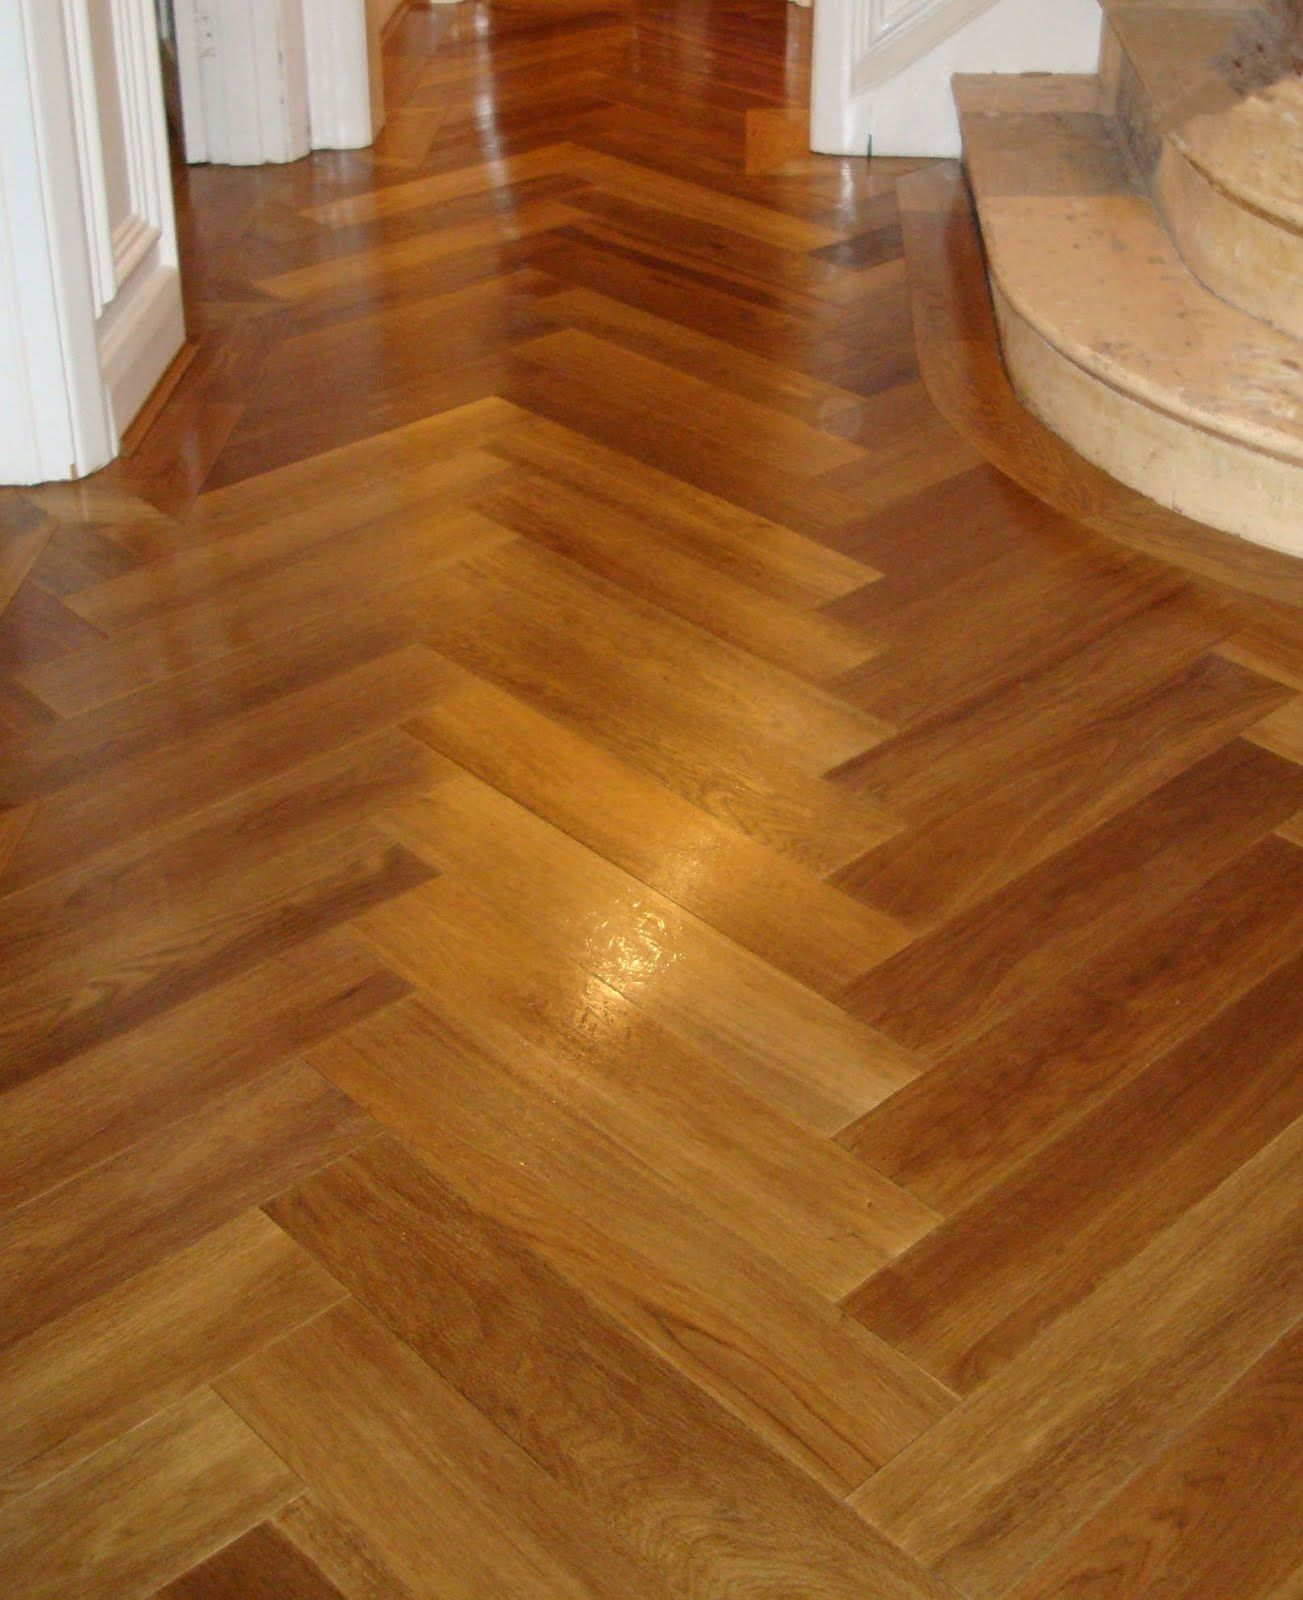 wood flooring ideas Wood FloorWood Floor DesignWood Floor